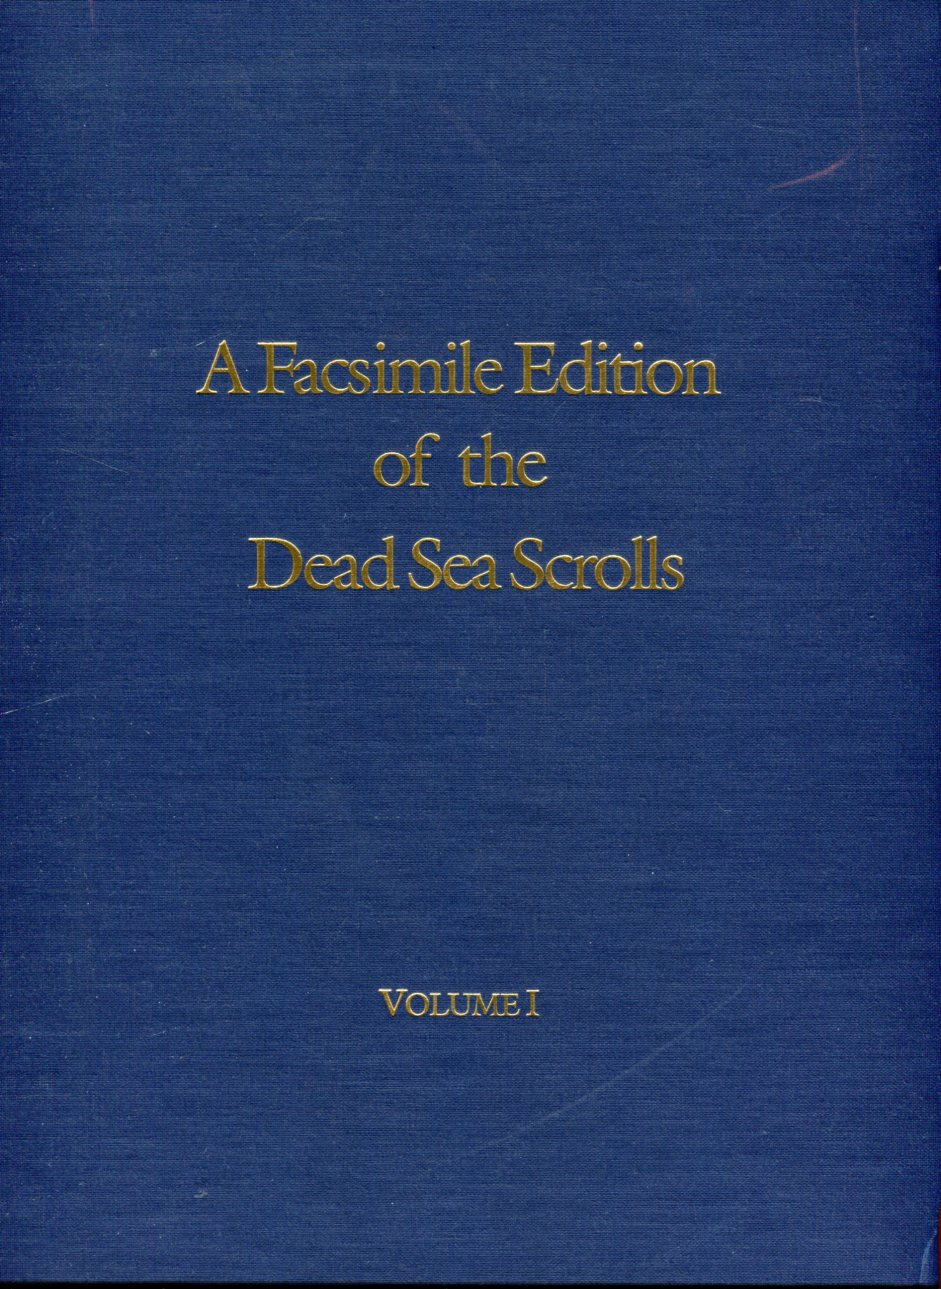 Image for A Facsimile Edition of the Dead Sea Scrolls (2 Volumes)